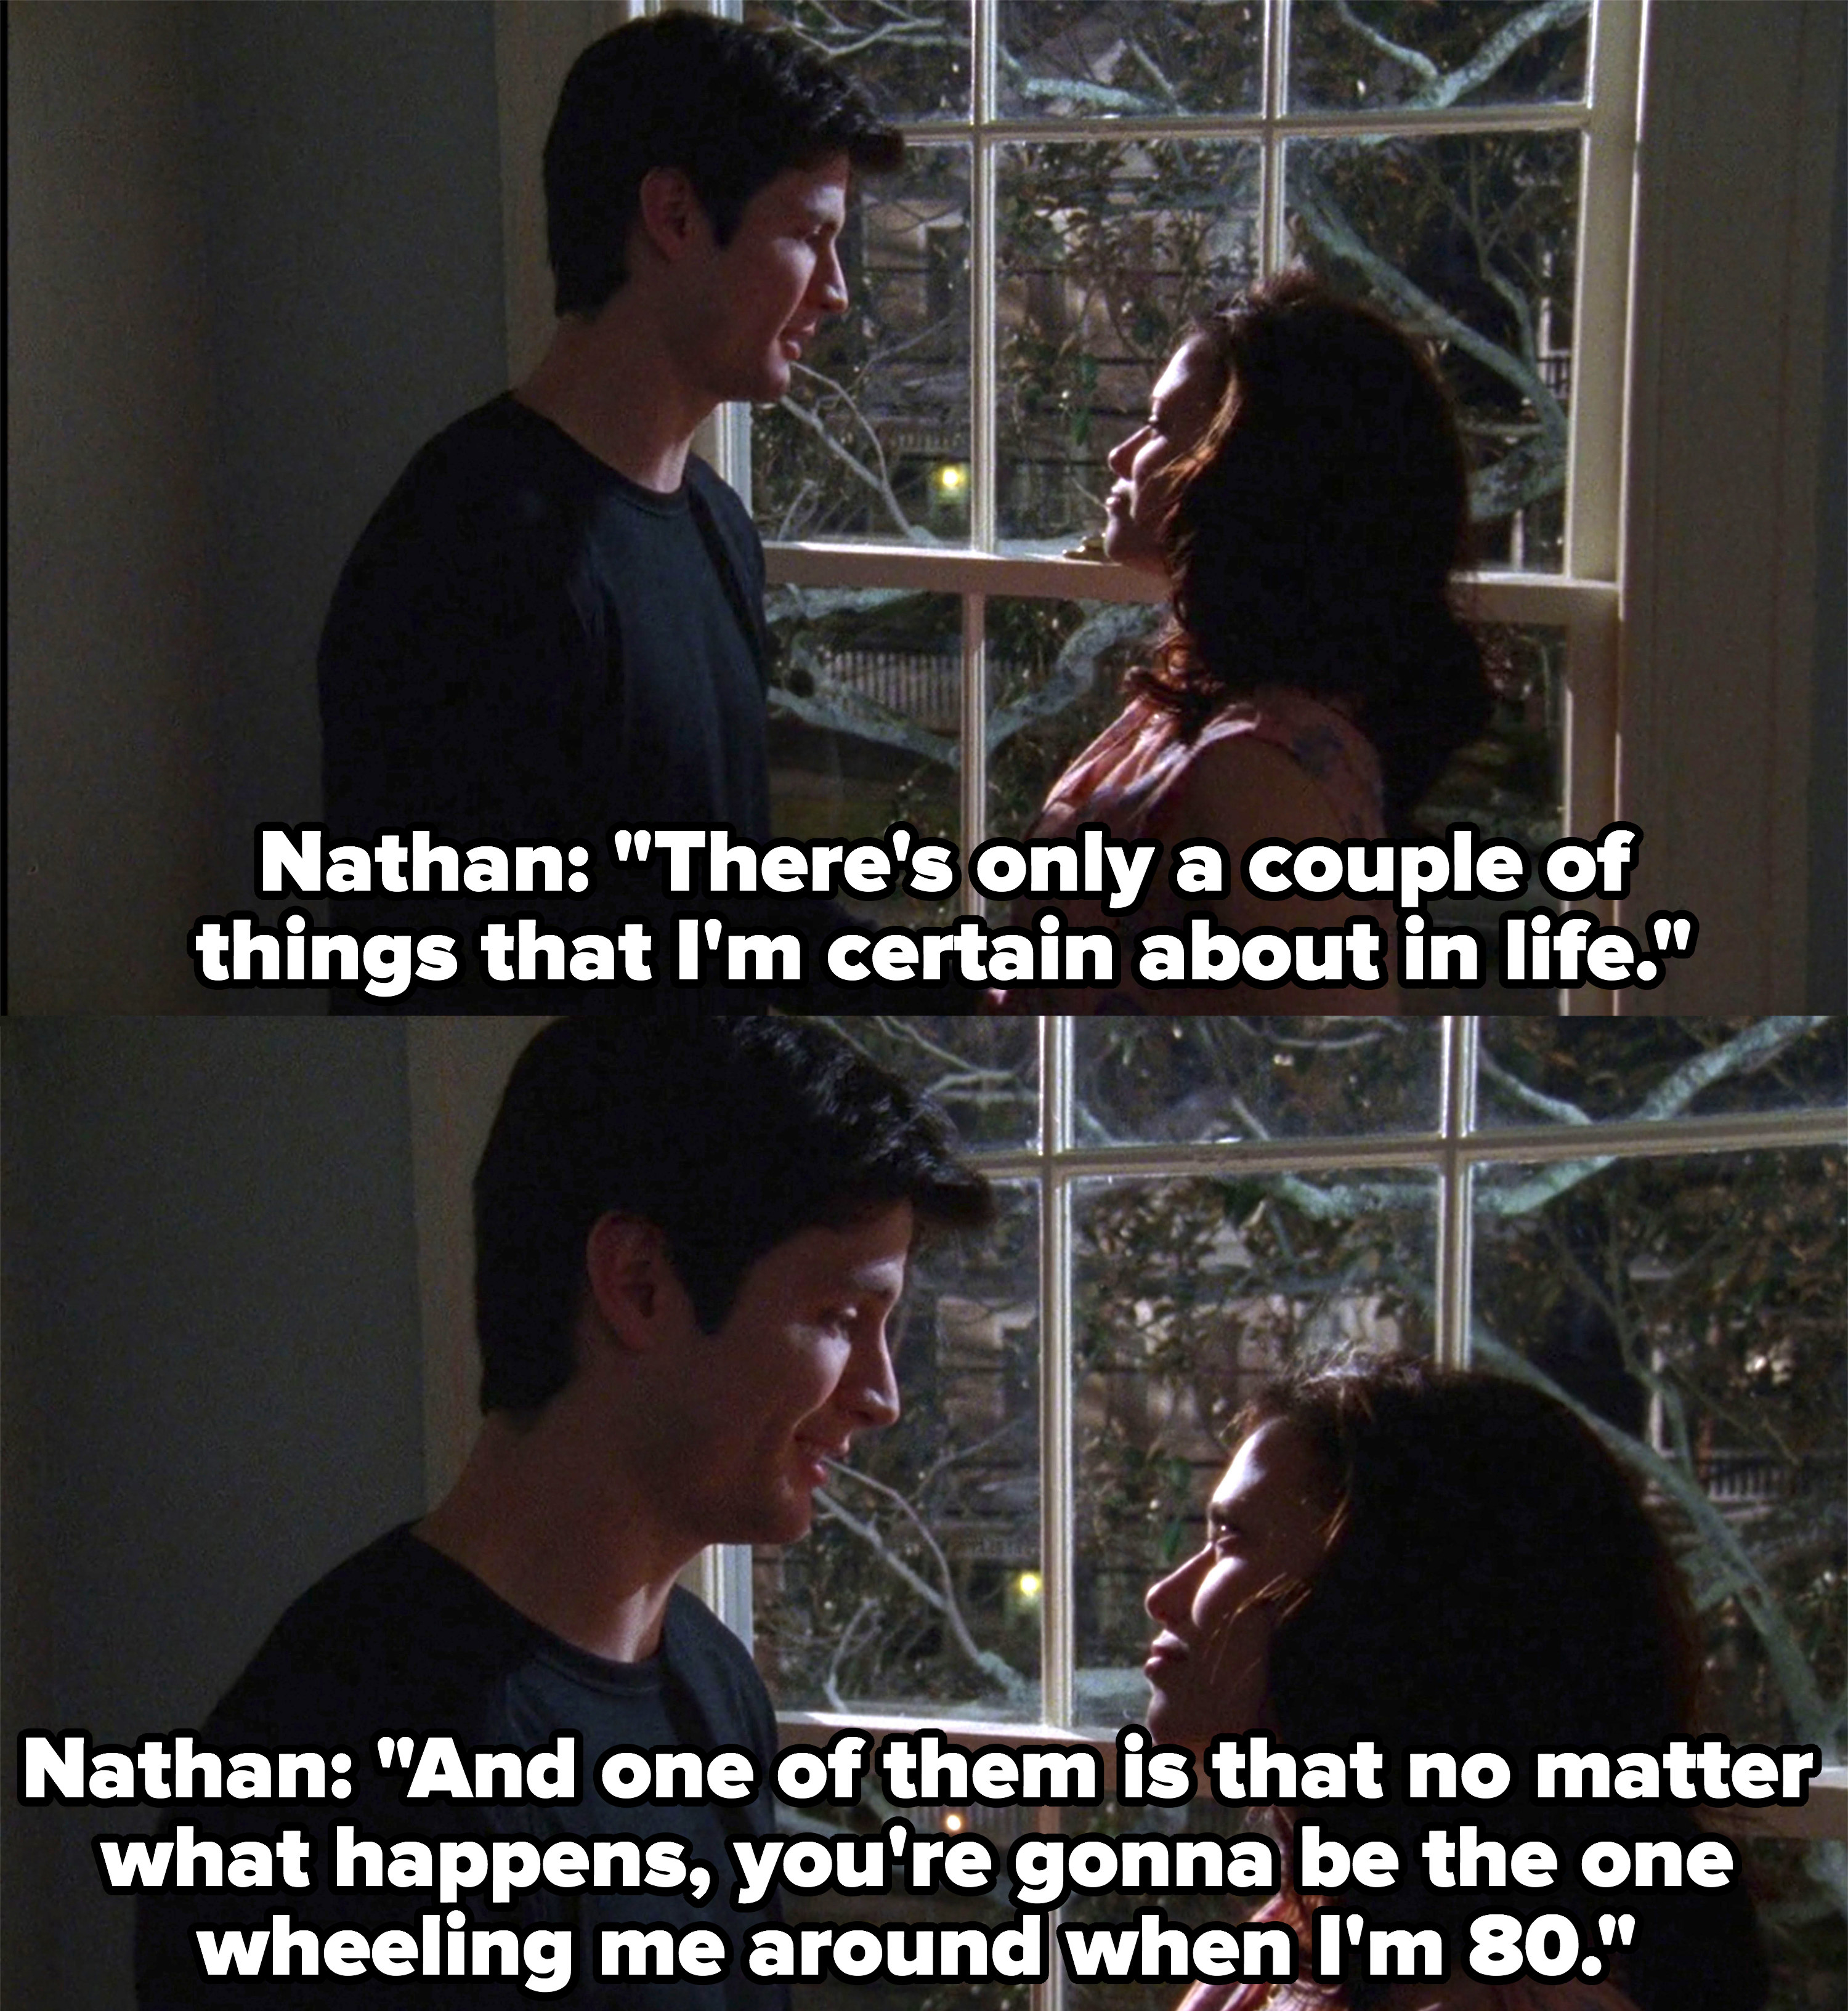 Nathan says Haley is going to be wheeling her around when he's 80